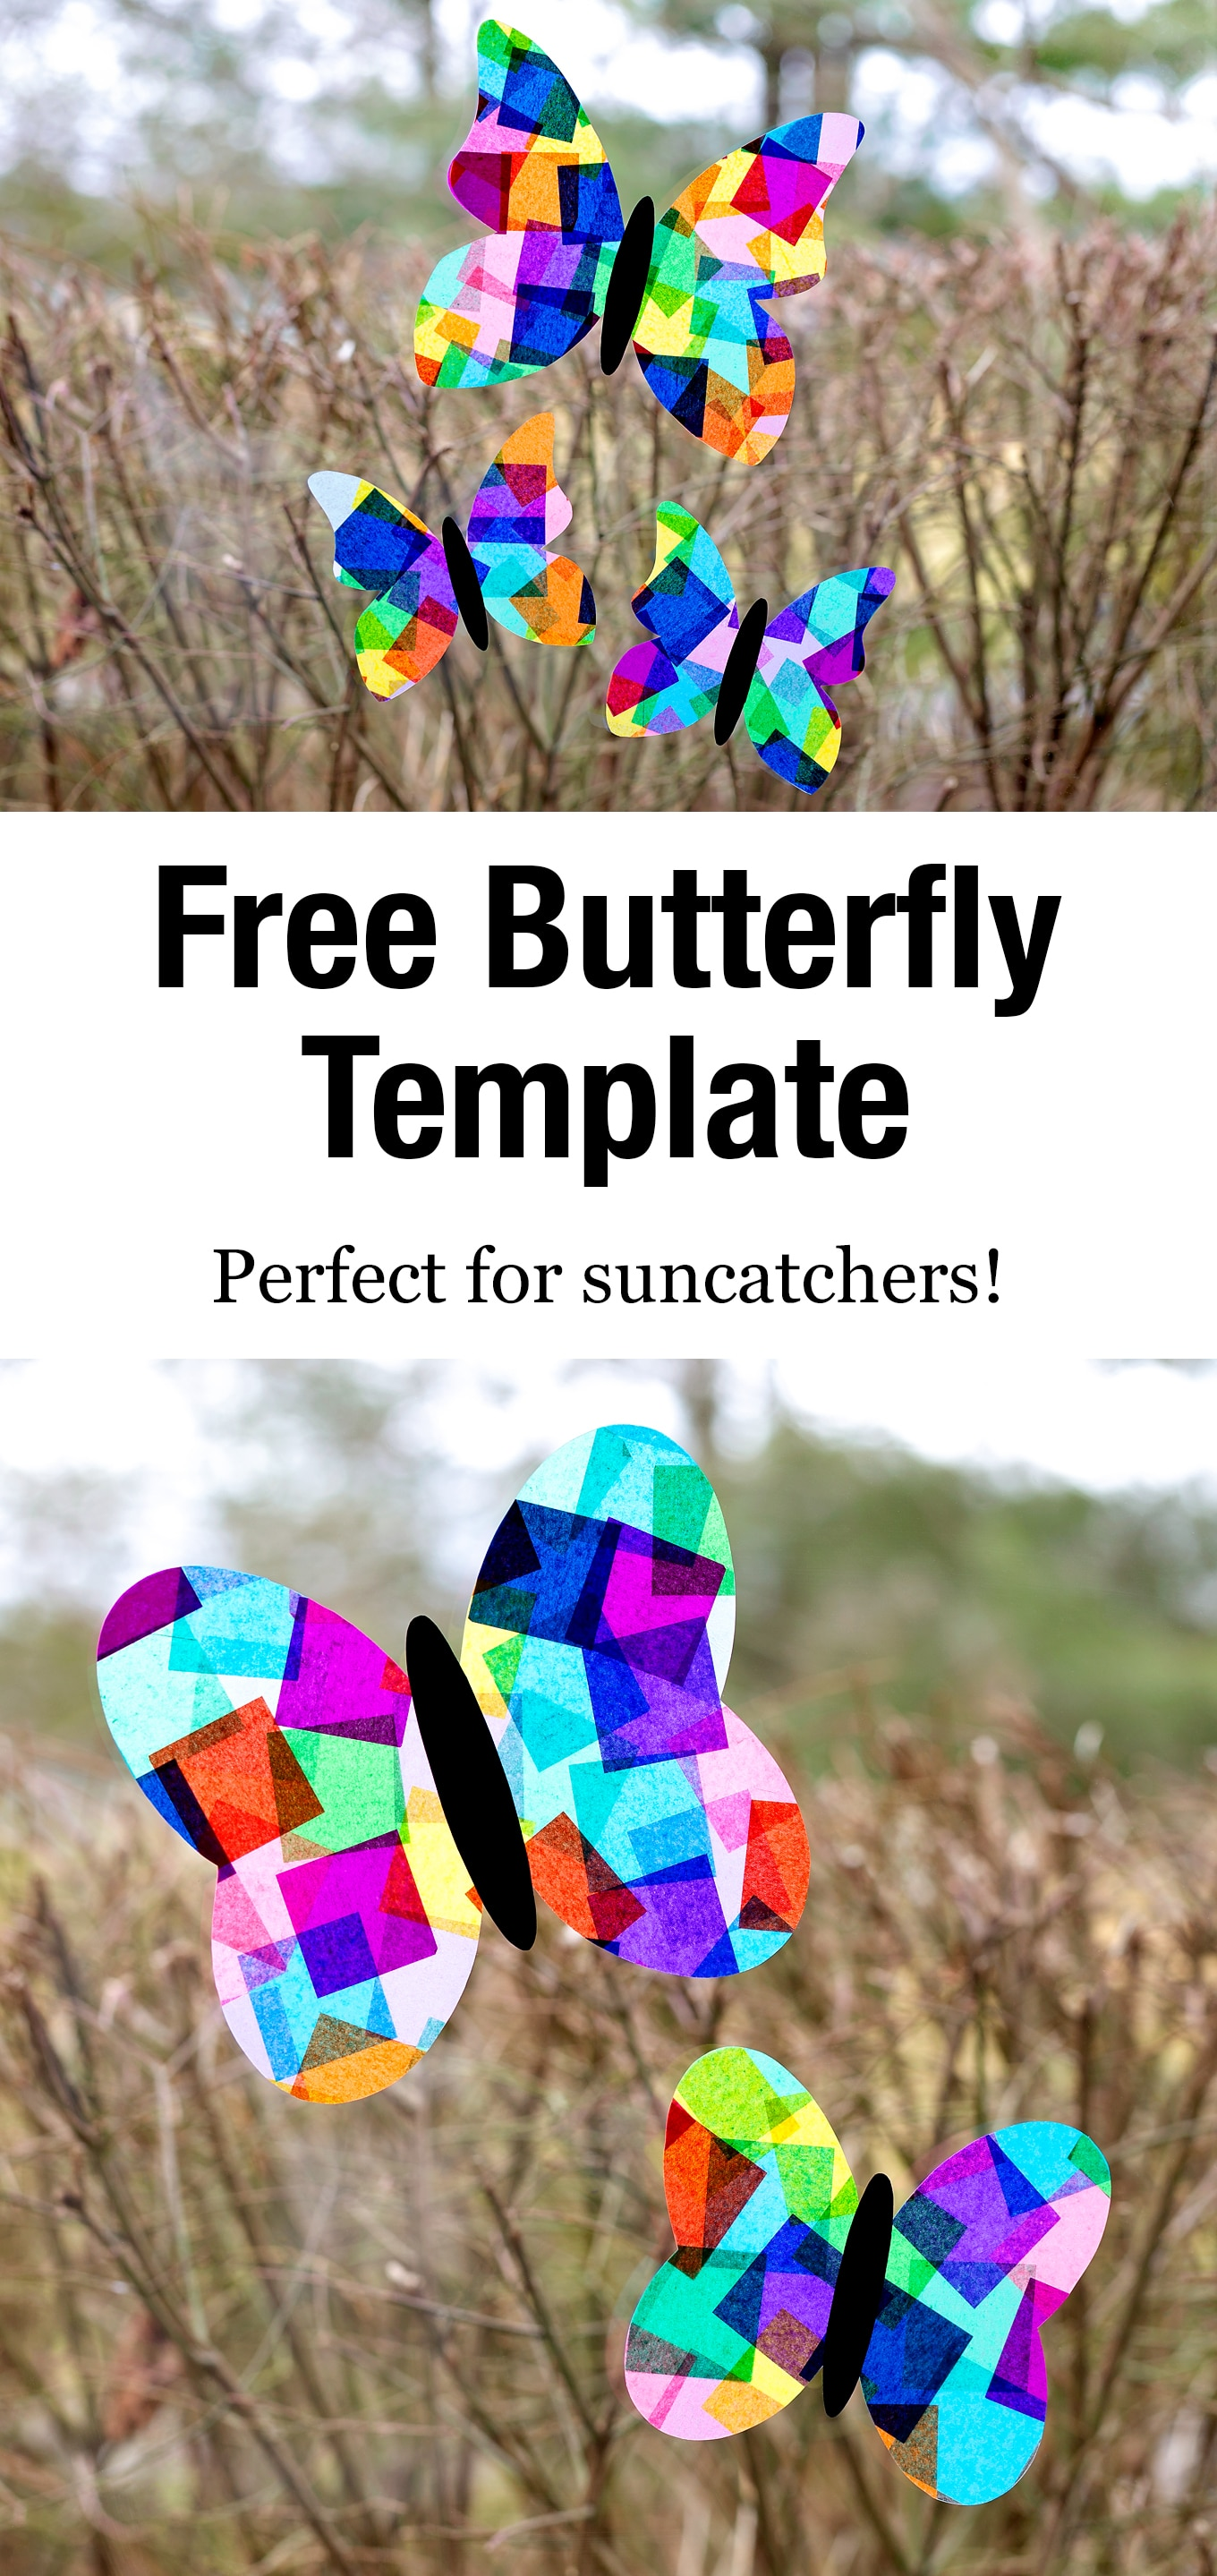 Our free printable butterfly template is perfect for butterfly crafts including suncatchers, simple paper crafts, painting, and more! #butterflytemplate #freeprintable #butterflycraft #suncatchersforkids #butterflysuncatcher via @firefliesandmudpies